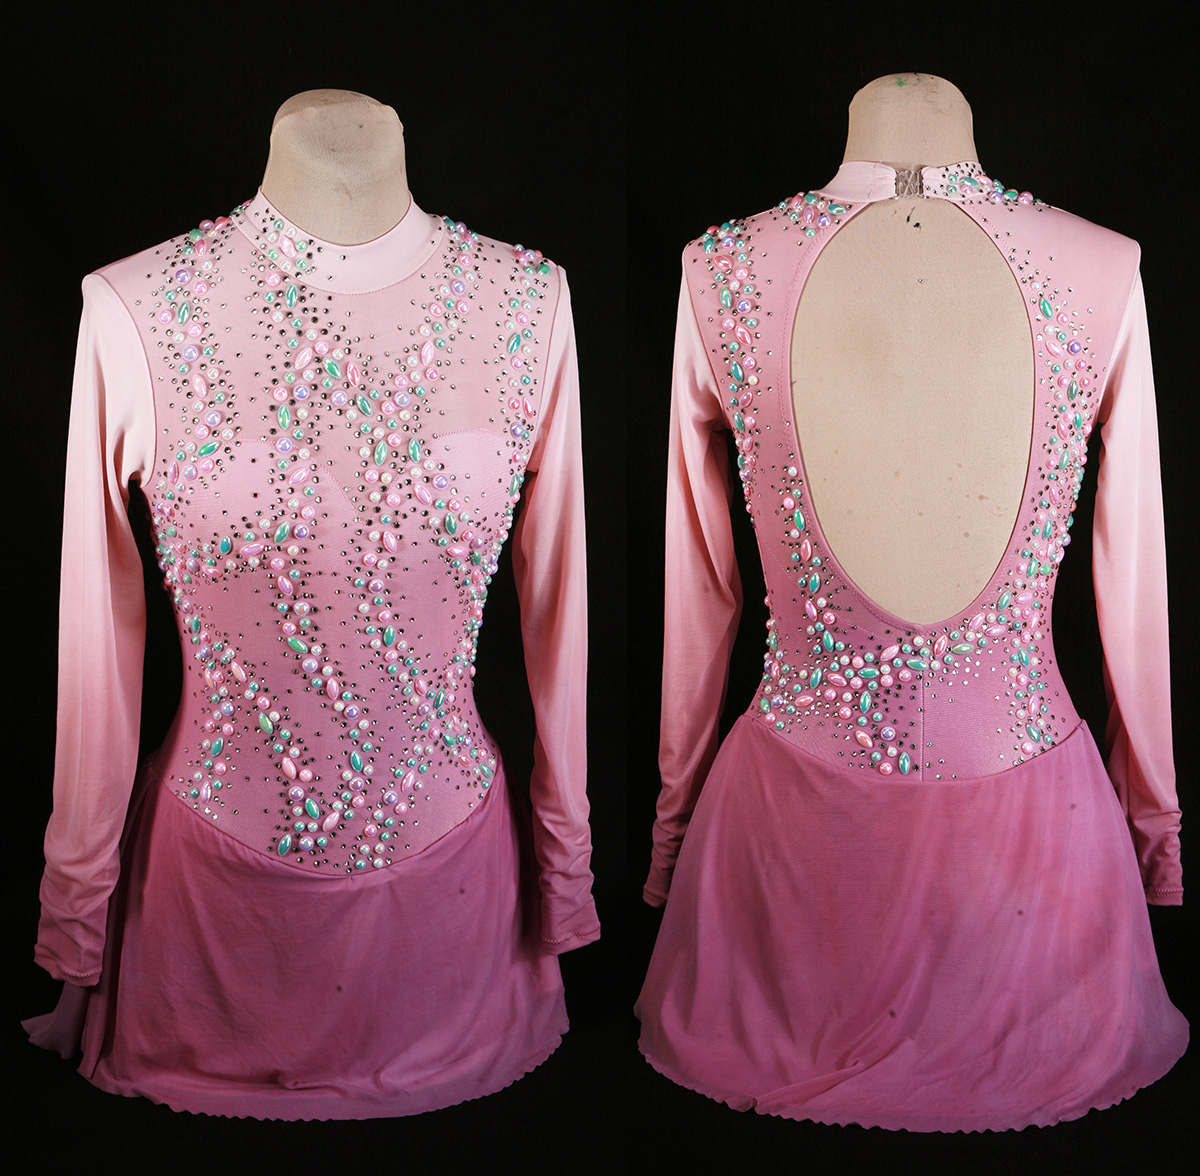 The front and back views of a pink and purple skating dress, heavily embellished with pearls and crystals.